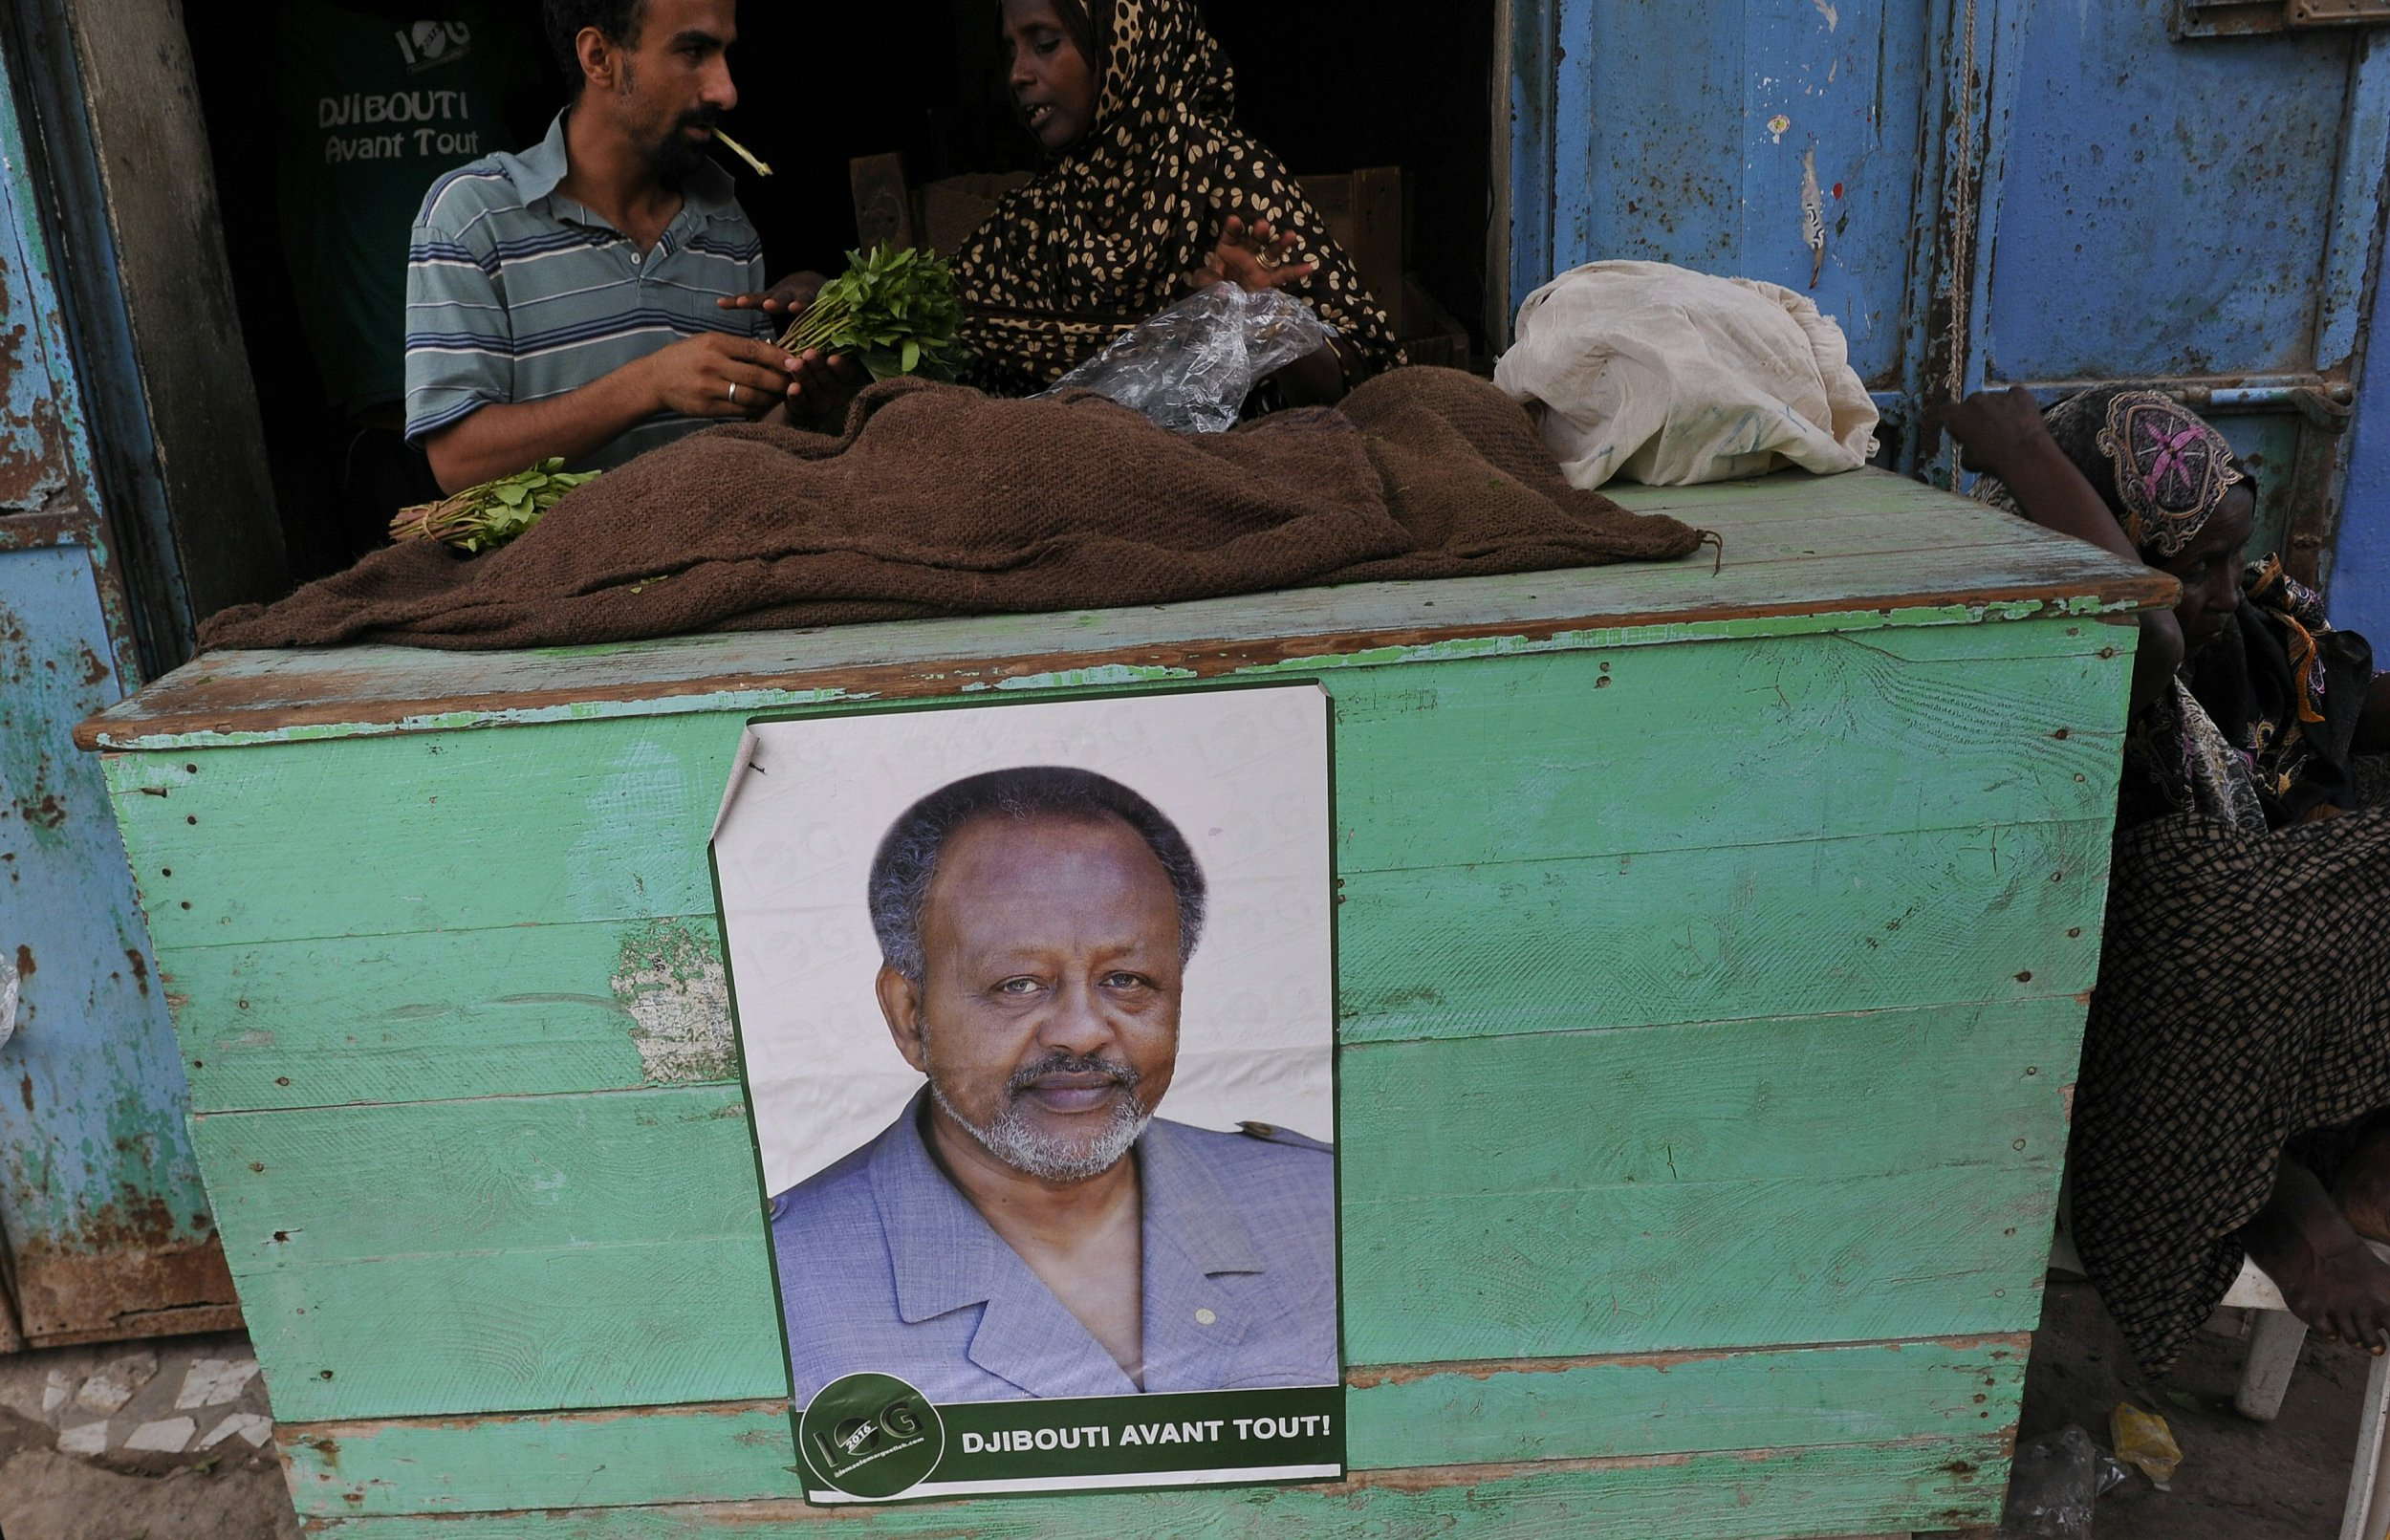 Poster of Djiboutian President Ismaïl Omar Guelleh.